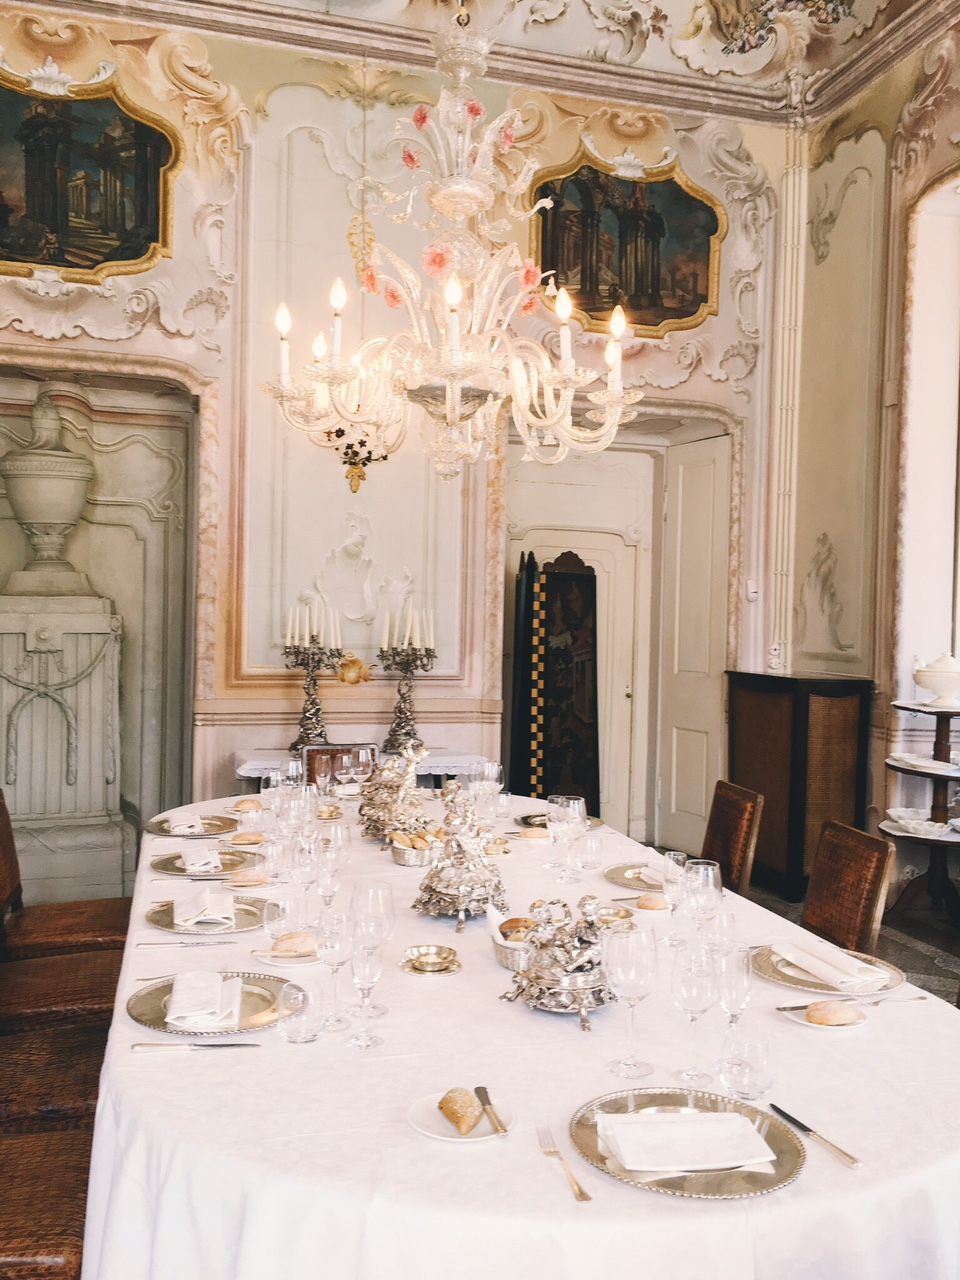 Luxurious dining table in dining room at Villa Sola Cabiati